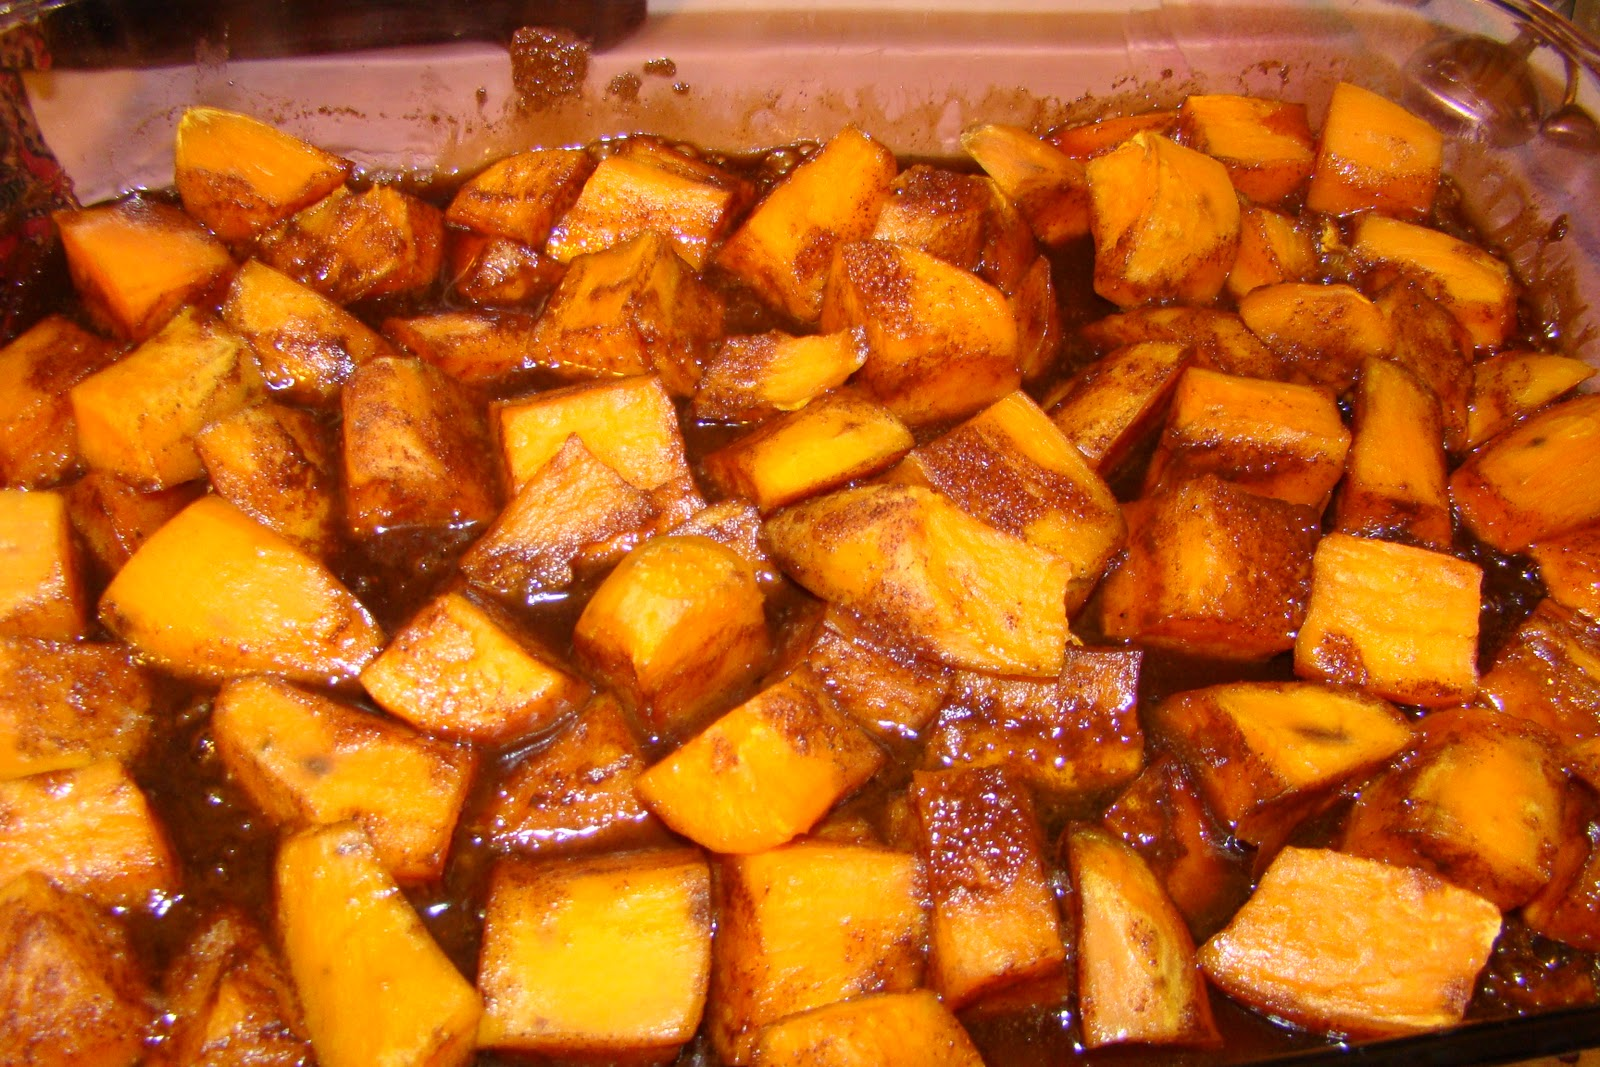 Turn oven up to 500 degrees. Top potatoes with almonds and ...